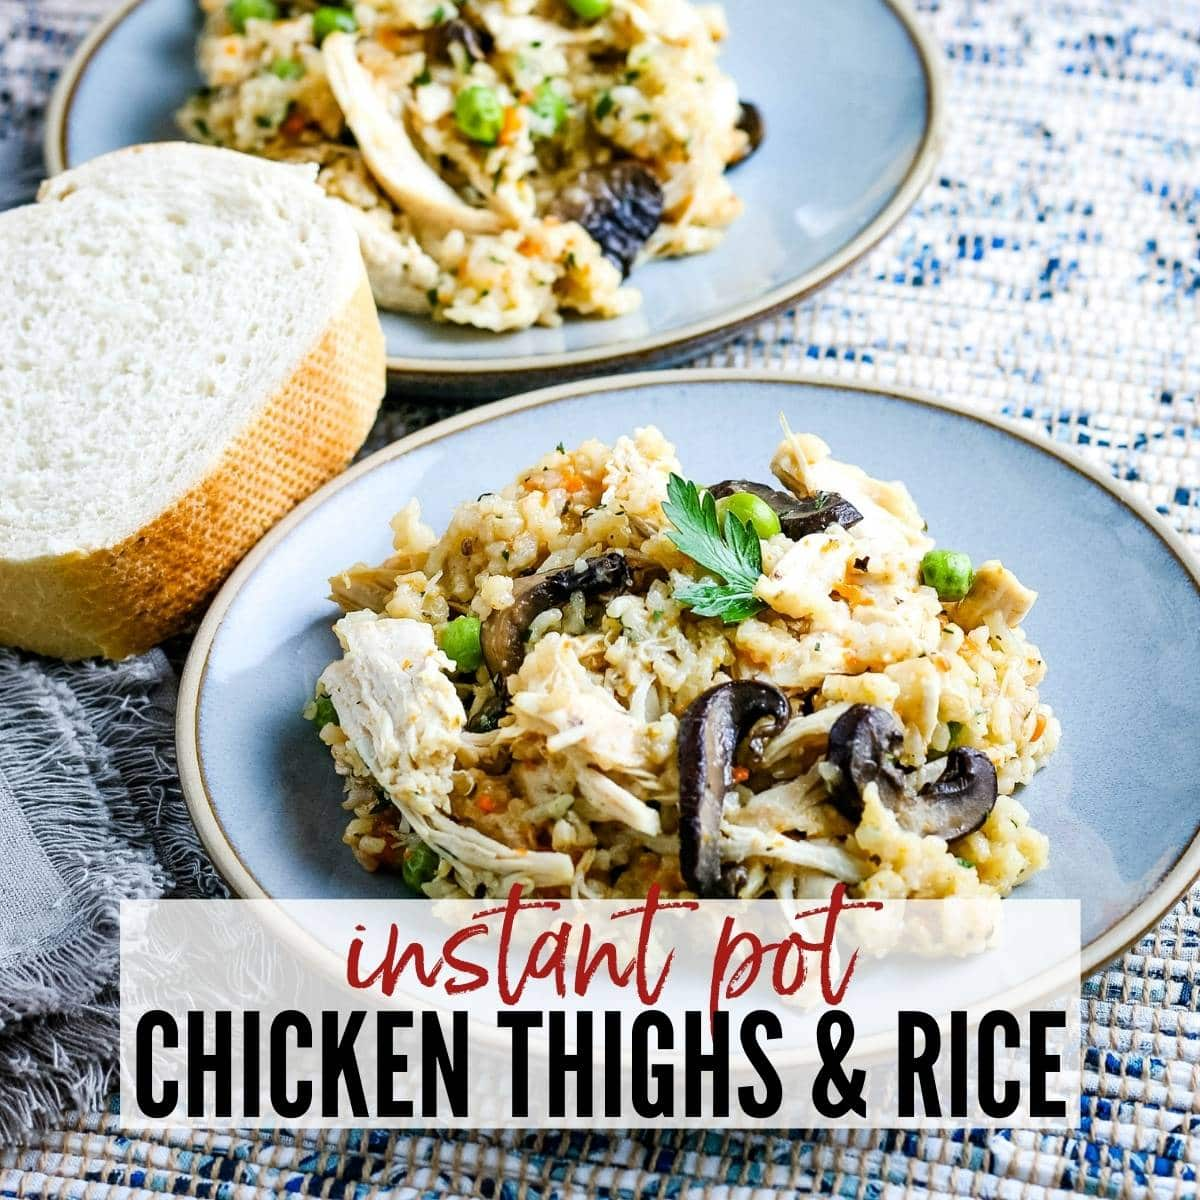 a plate of chicken and rice next to a slice of bread with text overlay